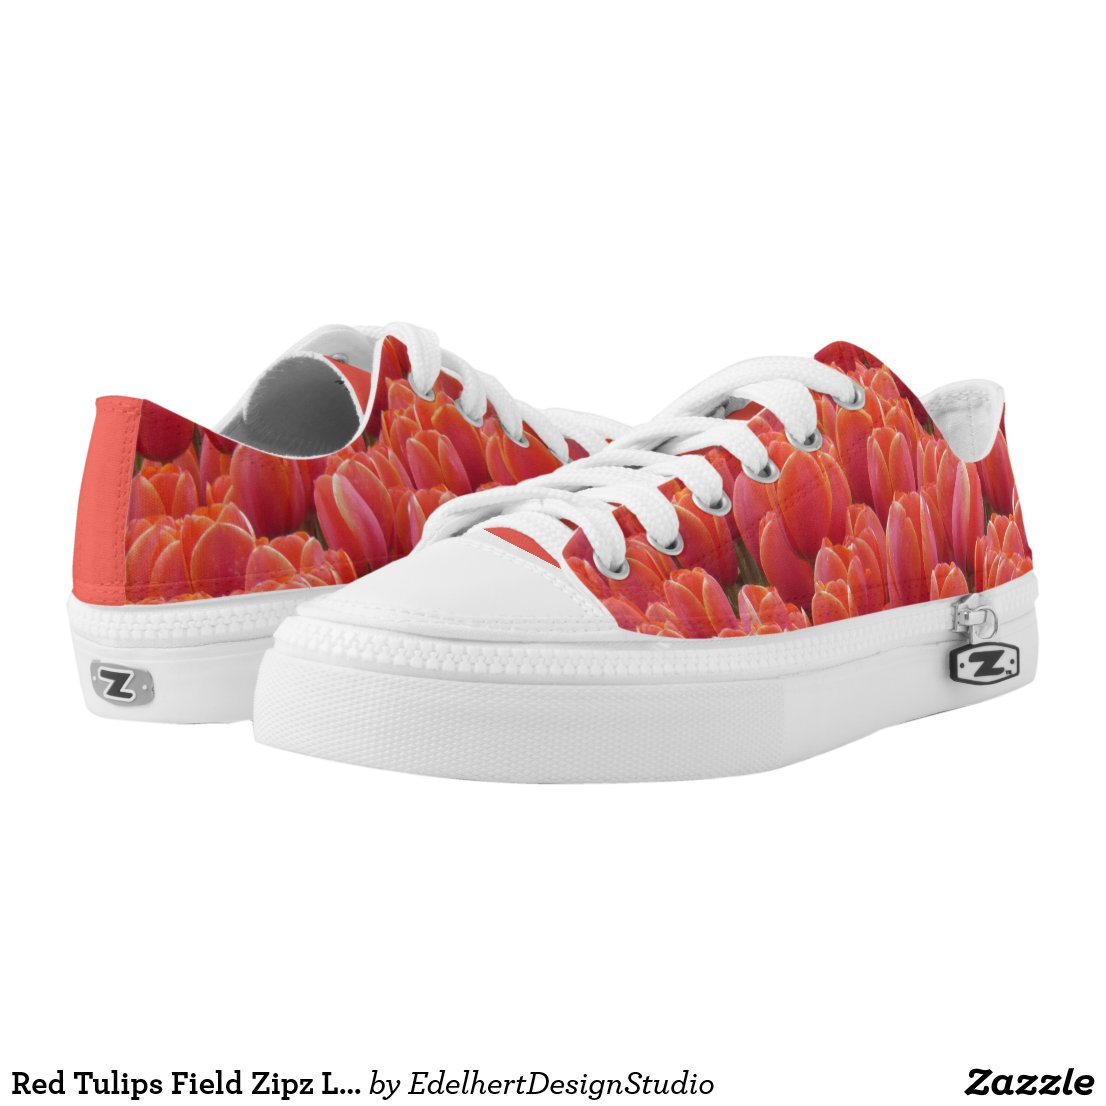 Red Tulips Field Zipz Low Top Shoes